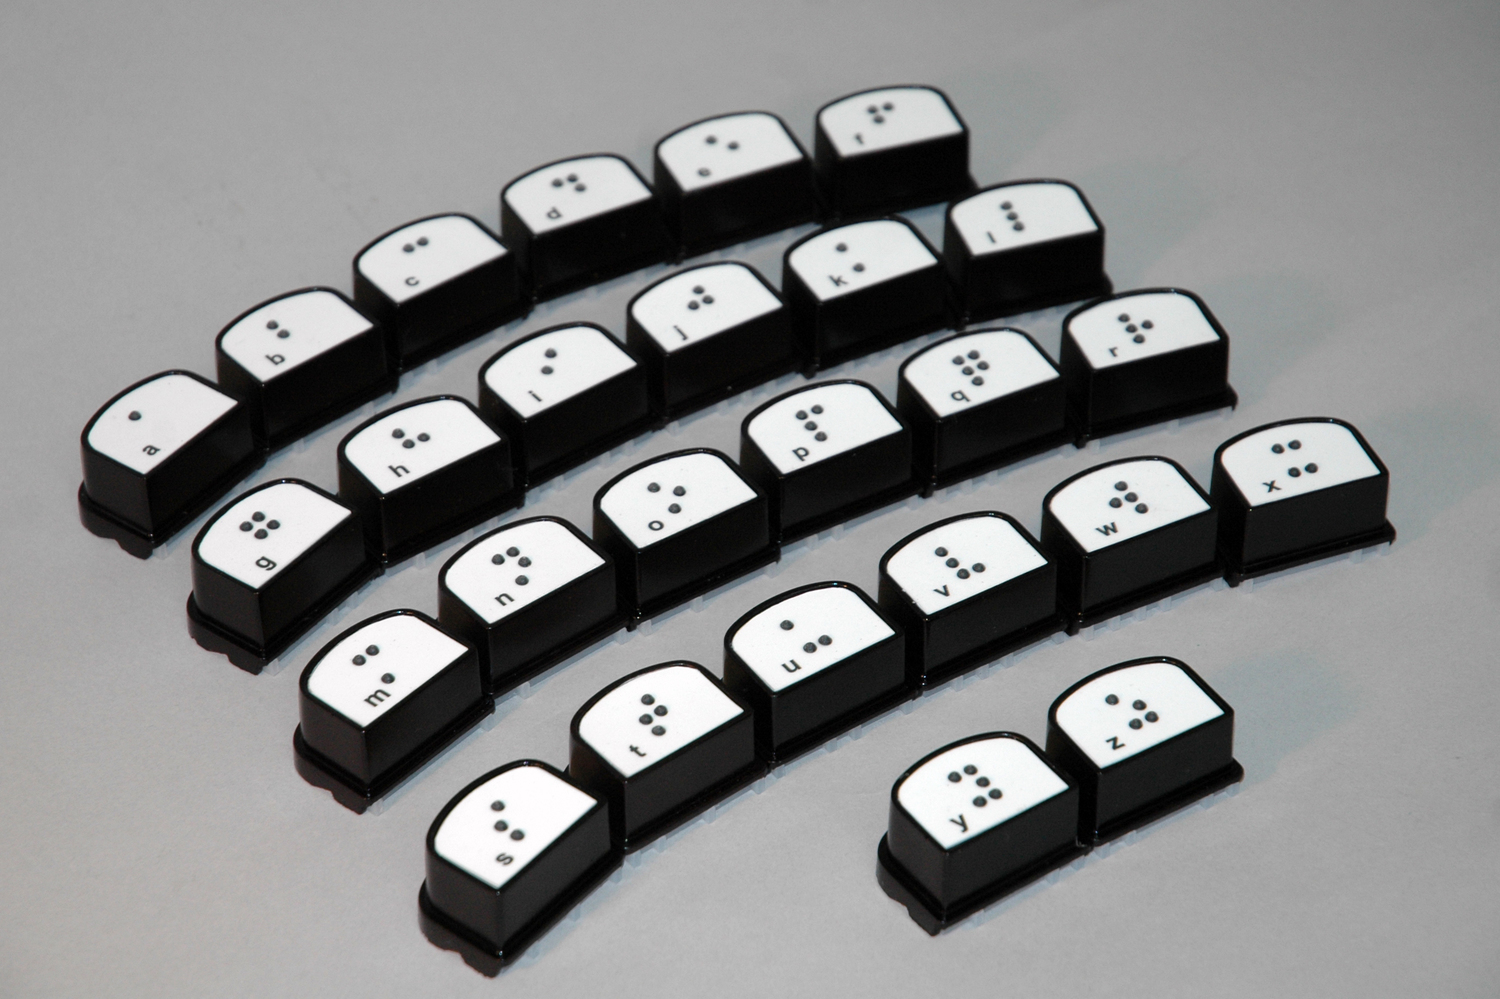 Photo of BrailleBlox: individual white blocks each with a black braille letter in the center and the corresponding print letter in the bottom left corner.